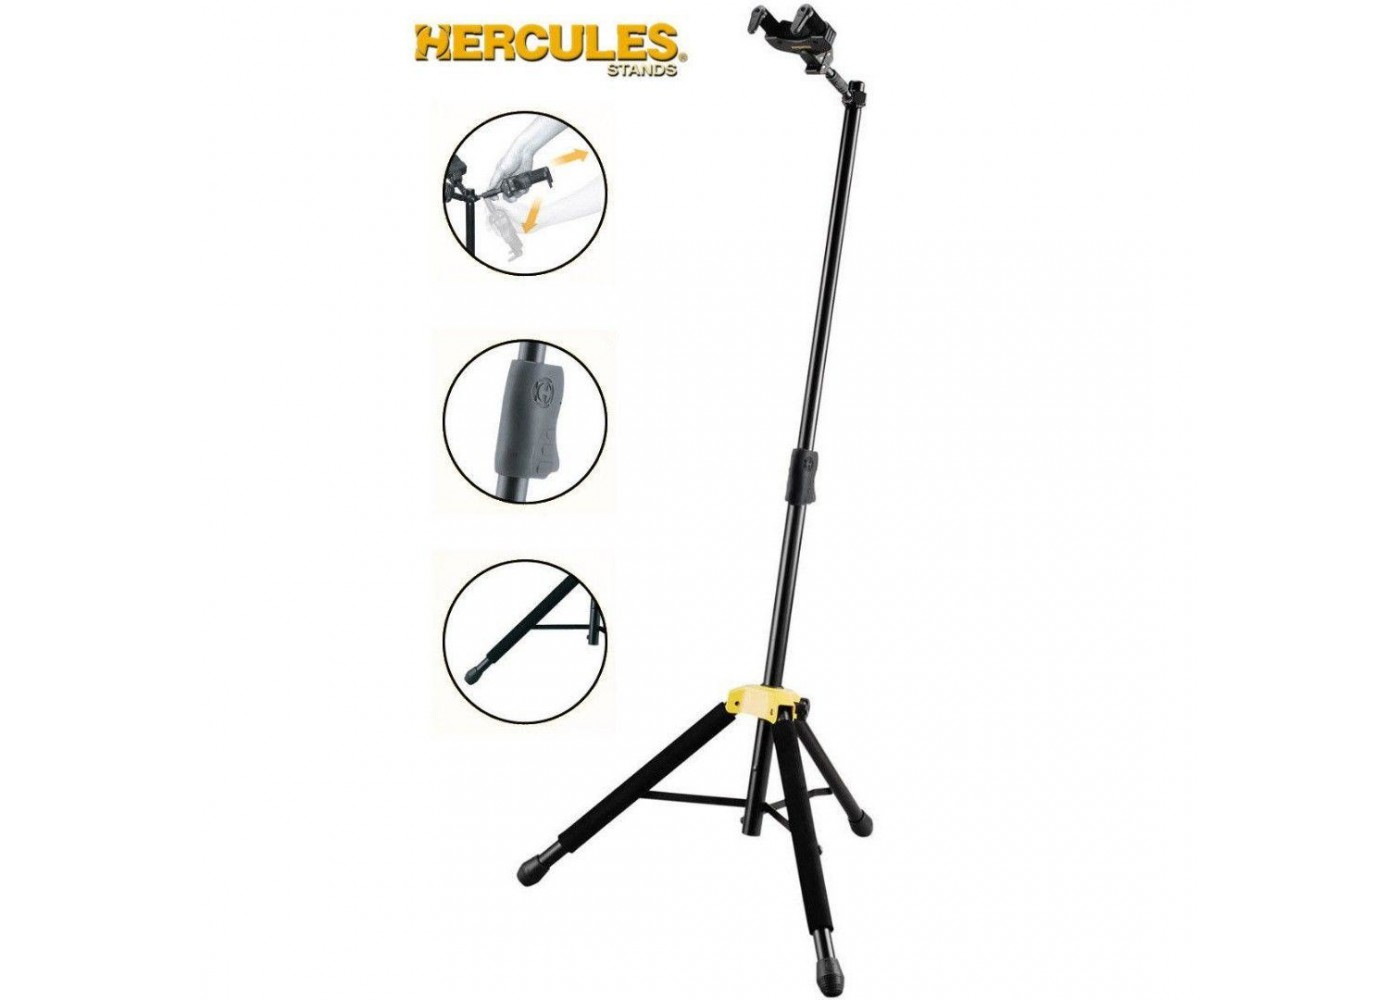 Hercules Model Gs415b Tripod Single Guitar Stand Auto Grip